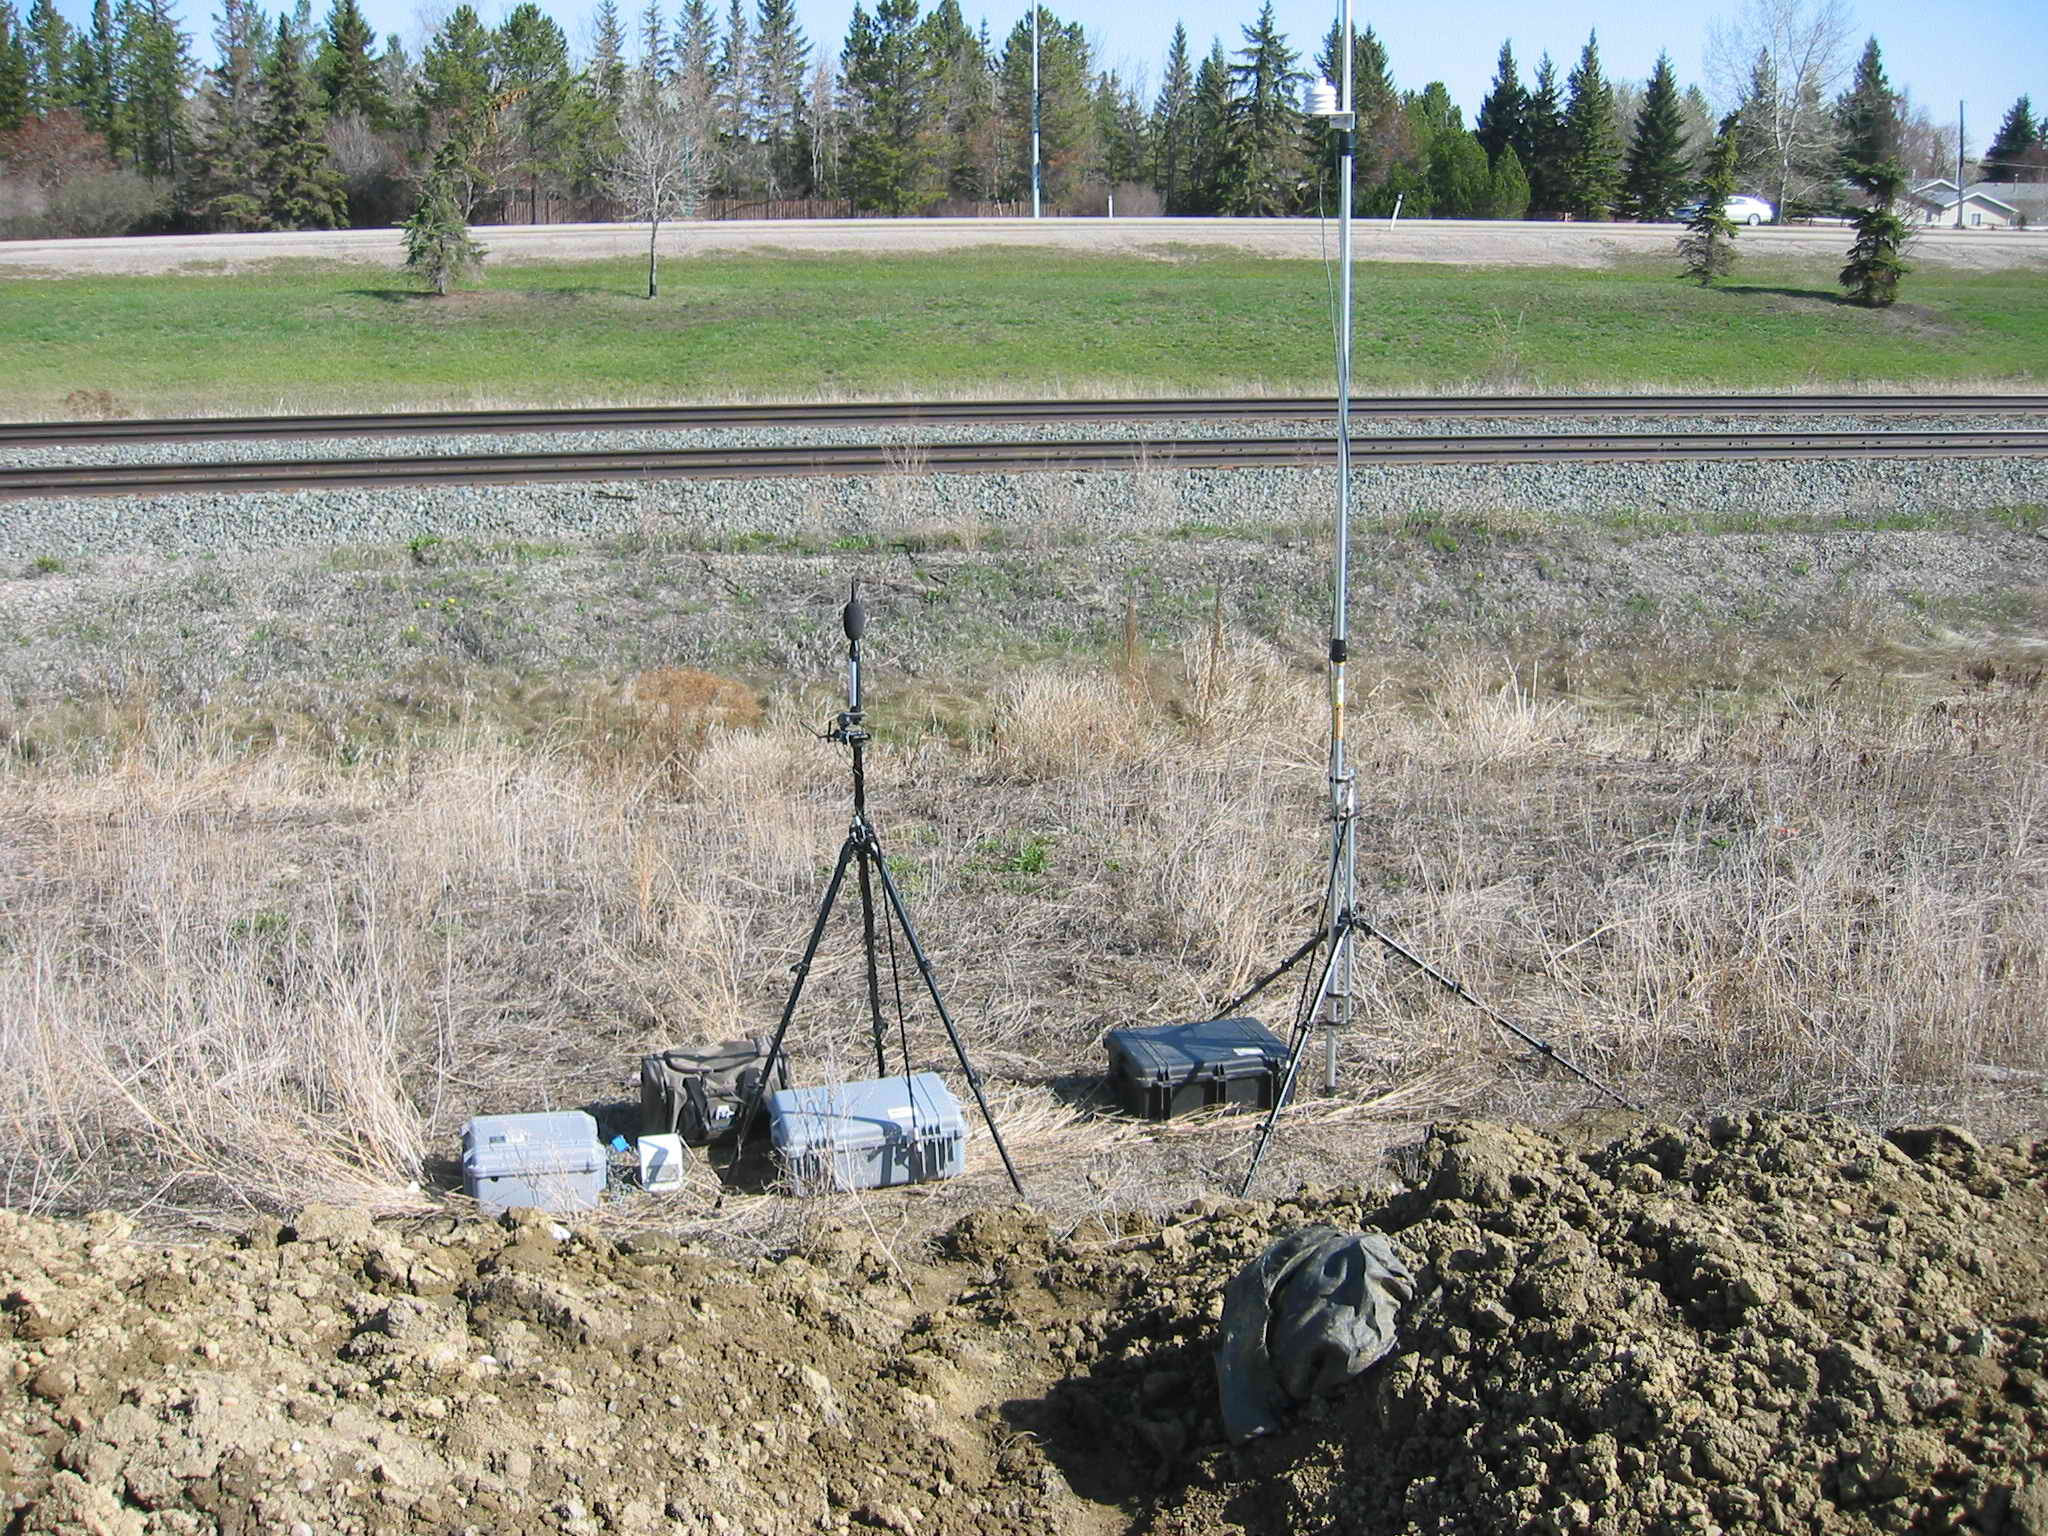 Noise, Vibration, and Weather Monitors Adjacent to Freight Train Track